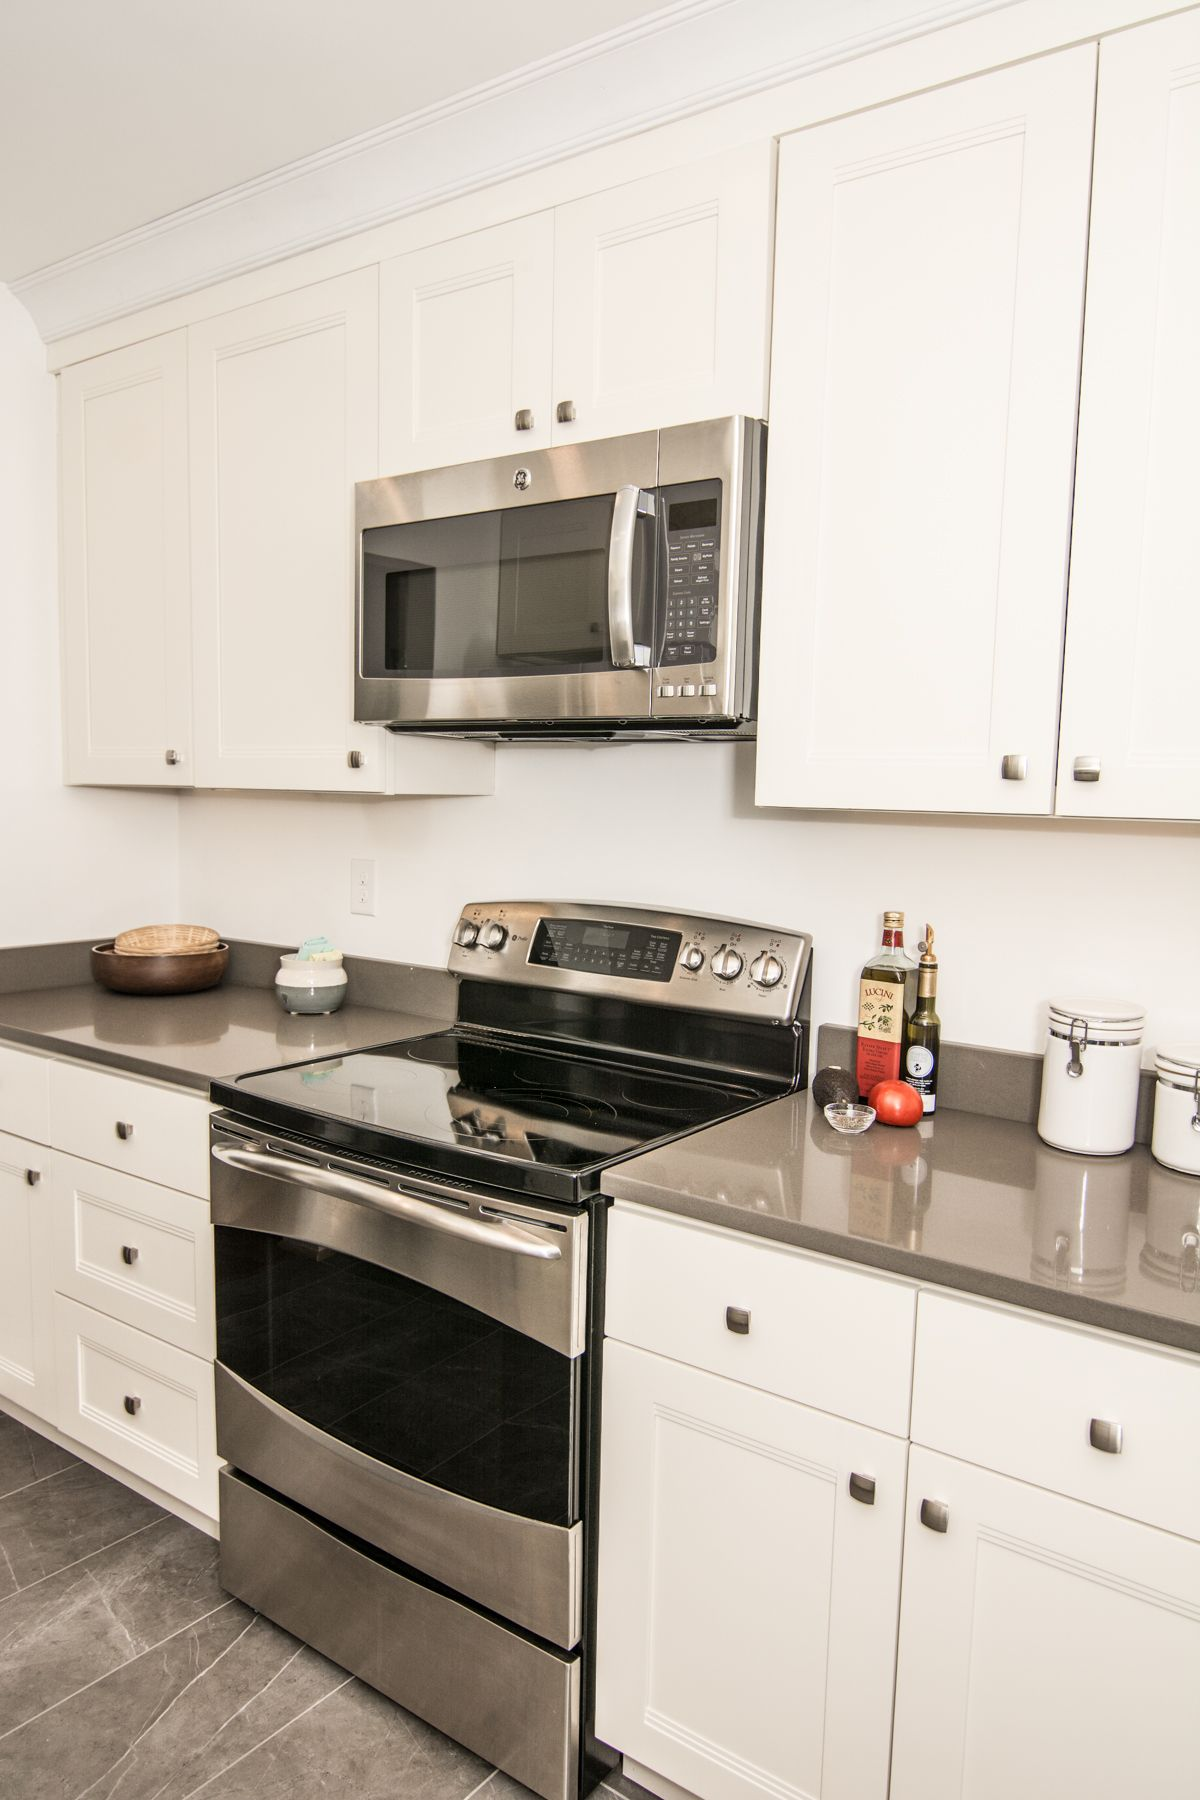 Best Stainless Steel Appliances With Under Cabinet Lighting 400 x 300